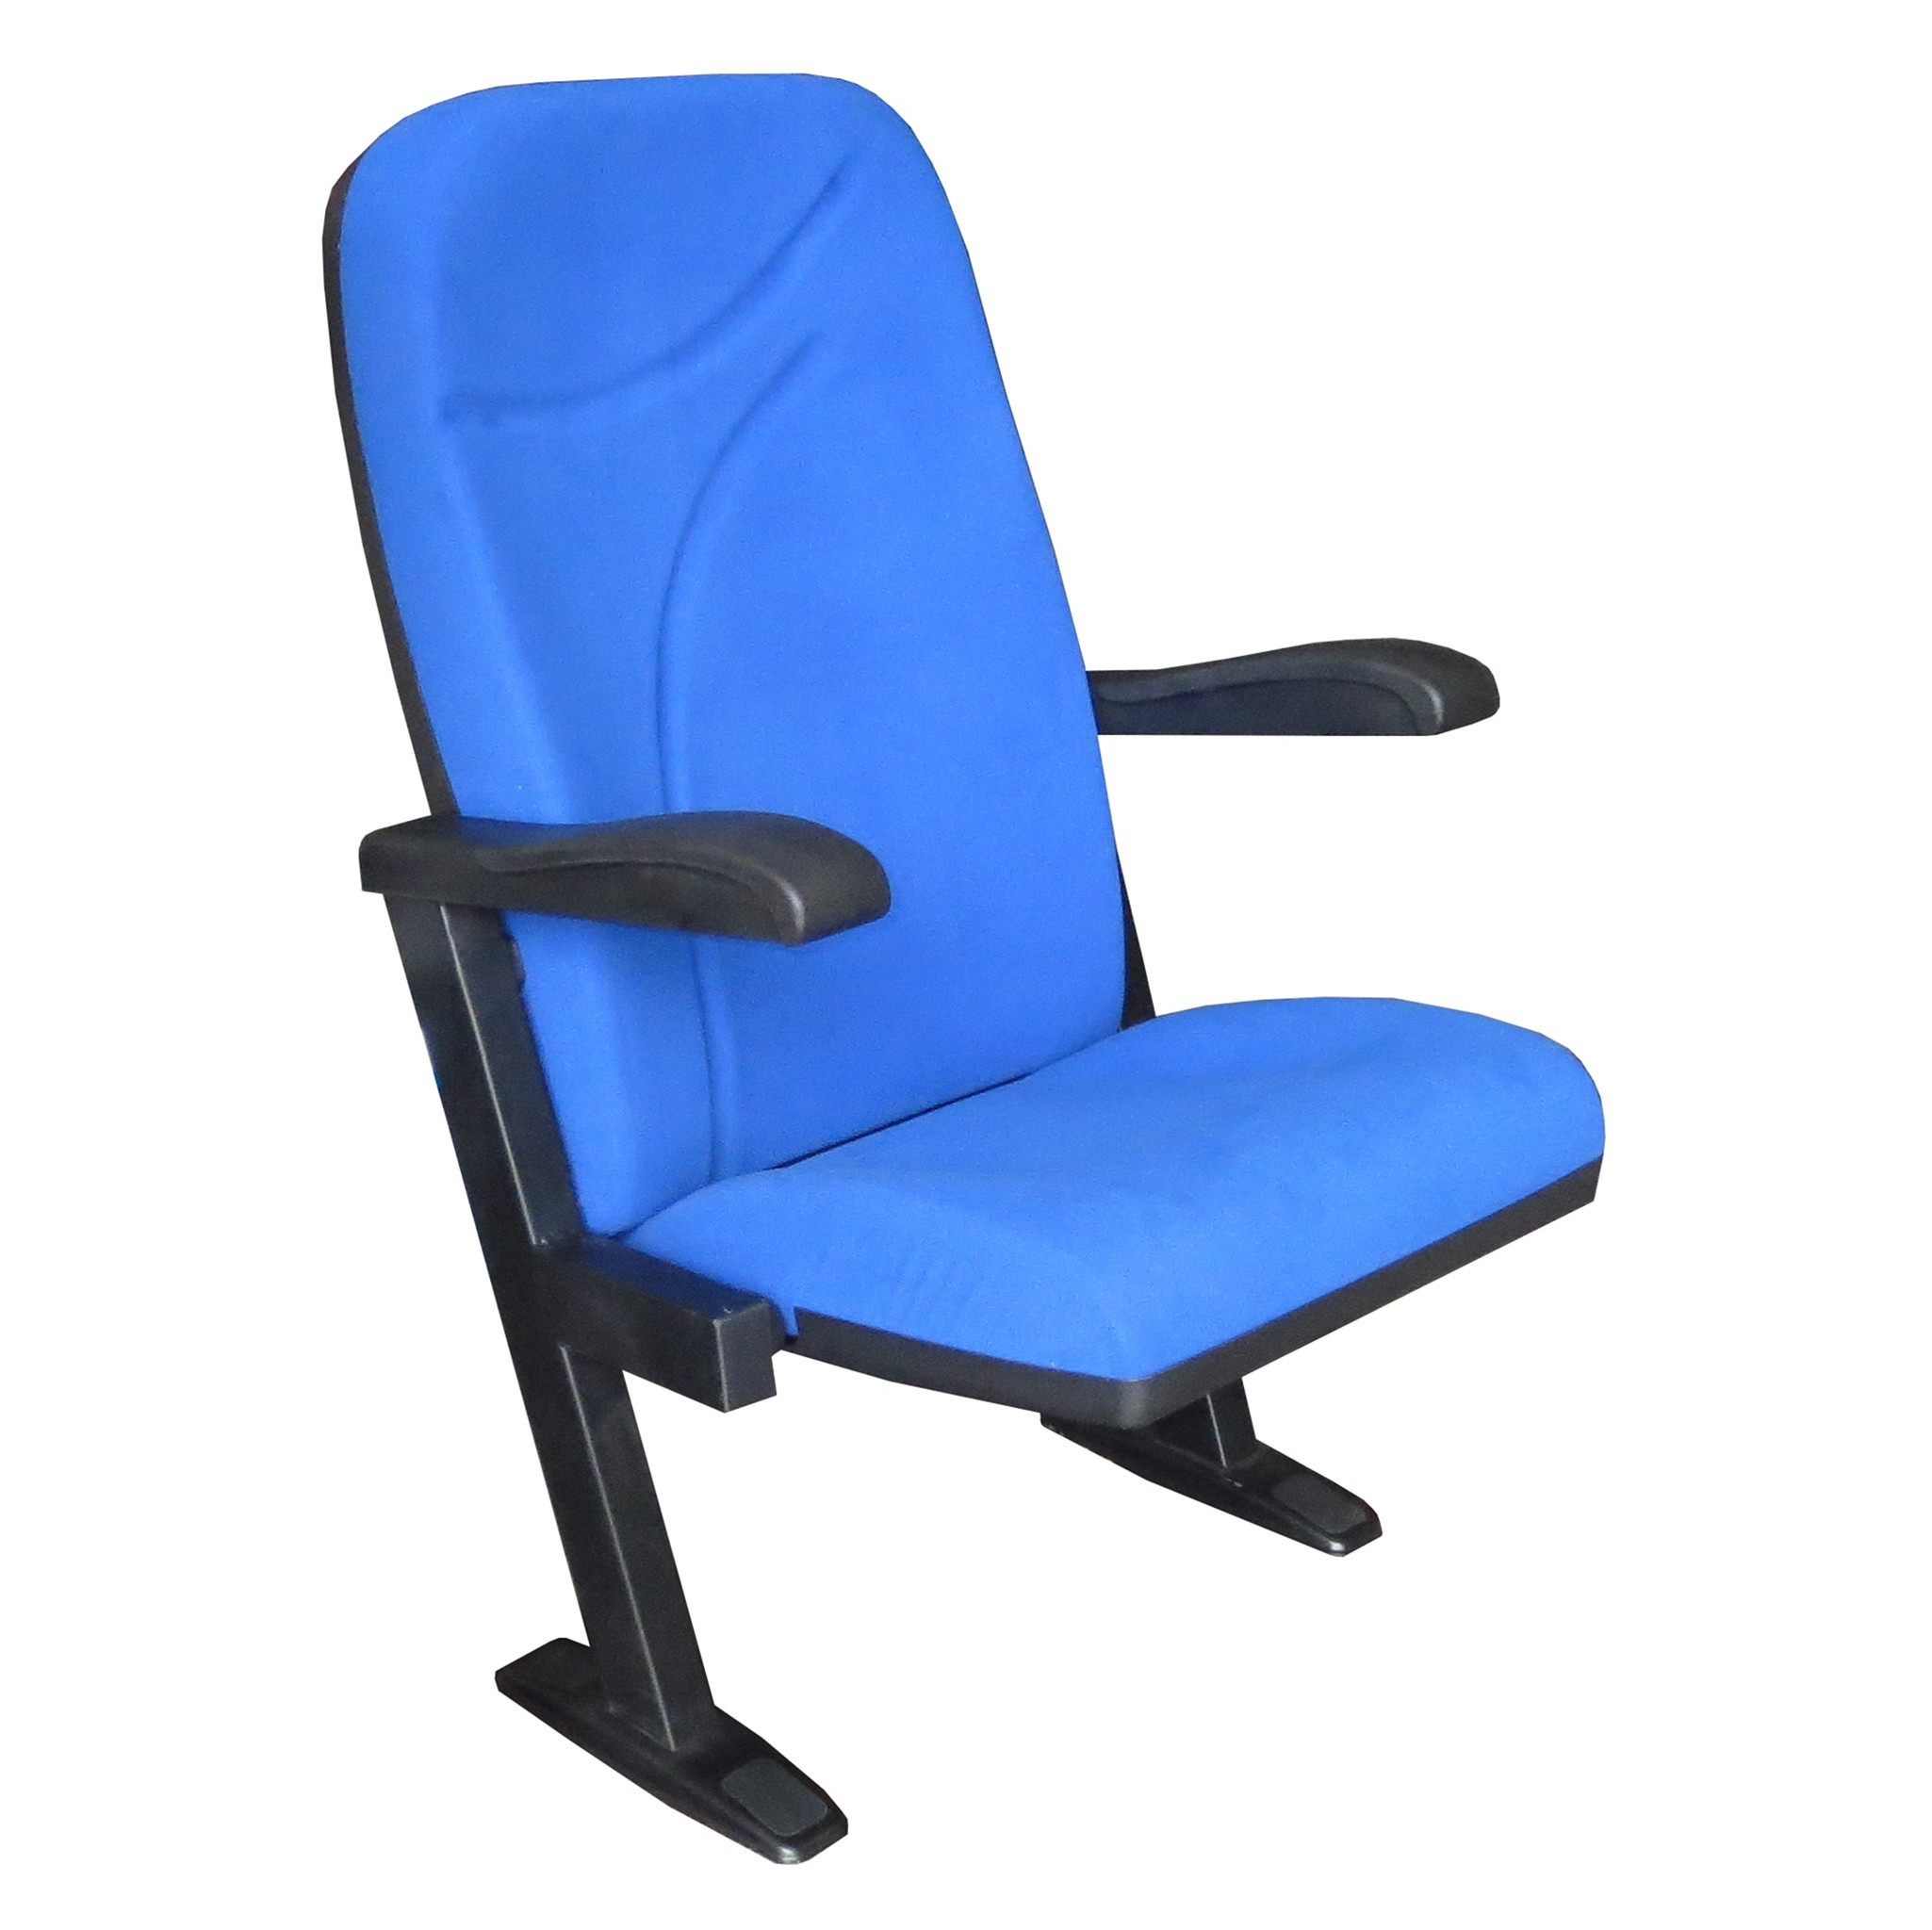 BOLTON P10 - Auditorium, Theatre, Lecture Hall Chair - Turkey - Seatorium - Public Seating Manufacturer